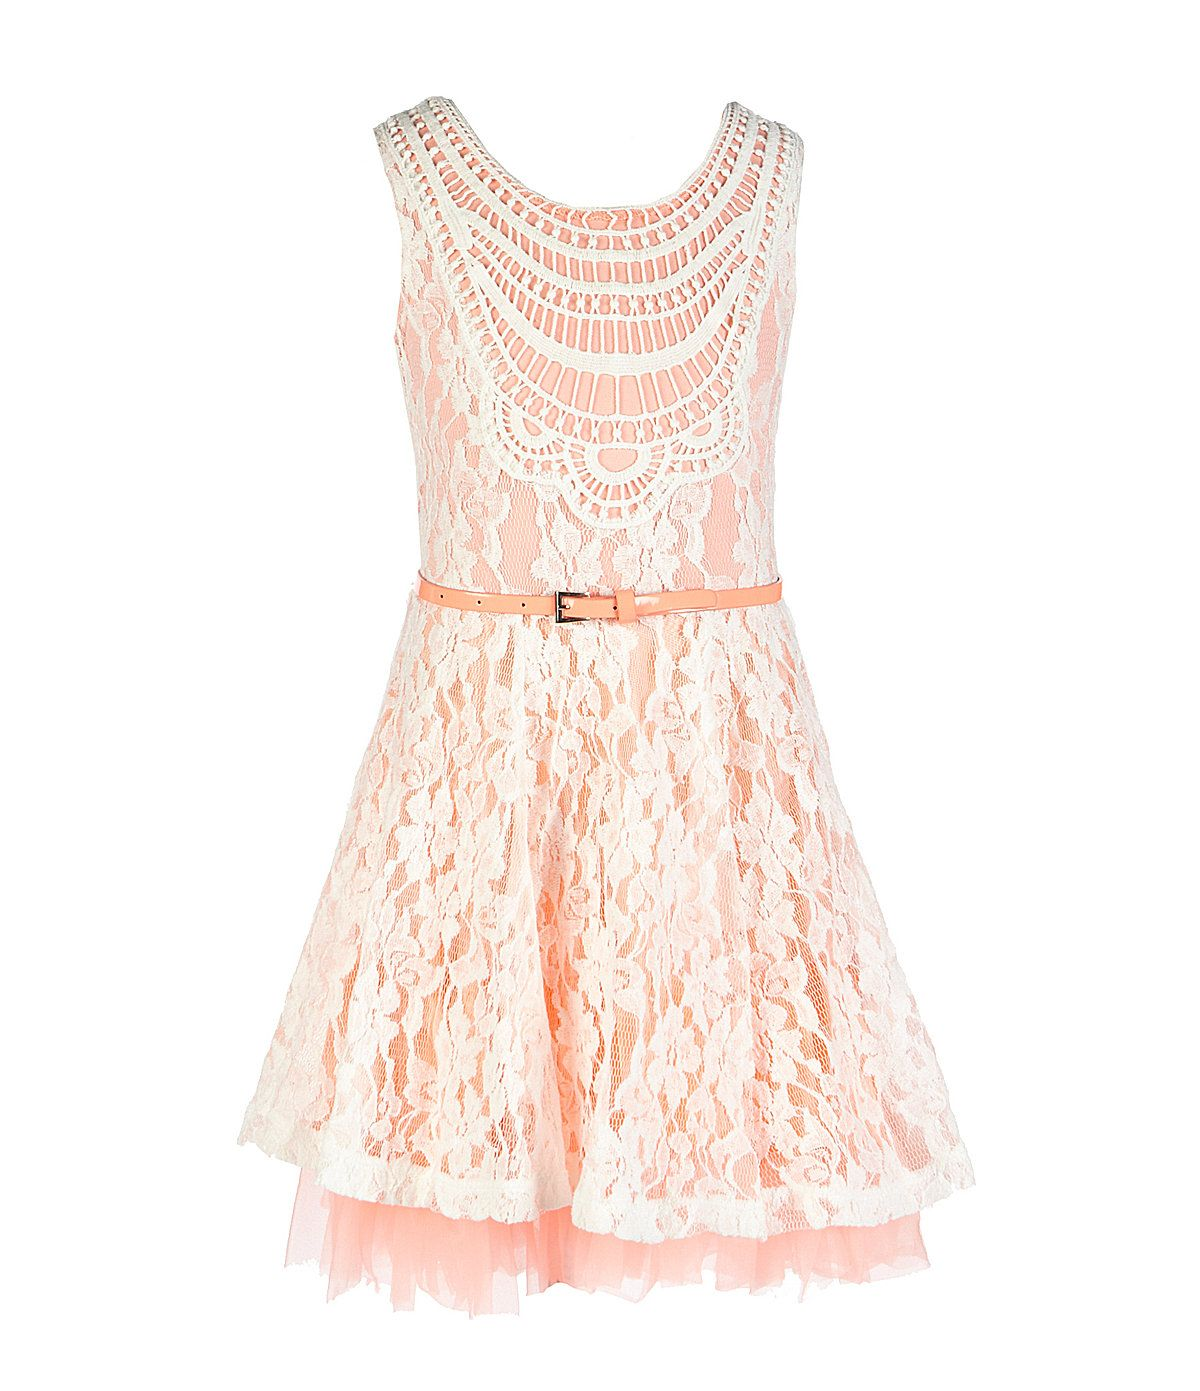 Copper key lace crochetneck skater dress dillards vow